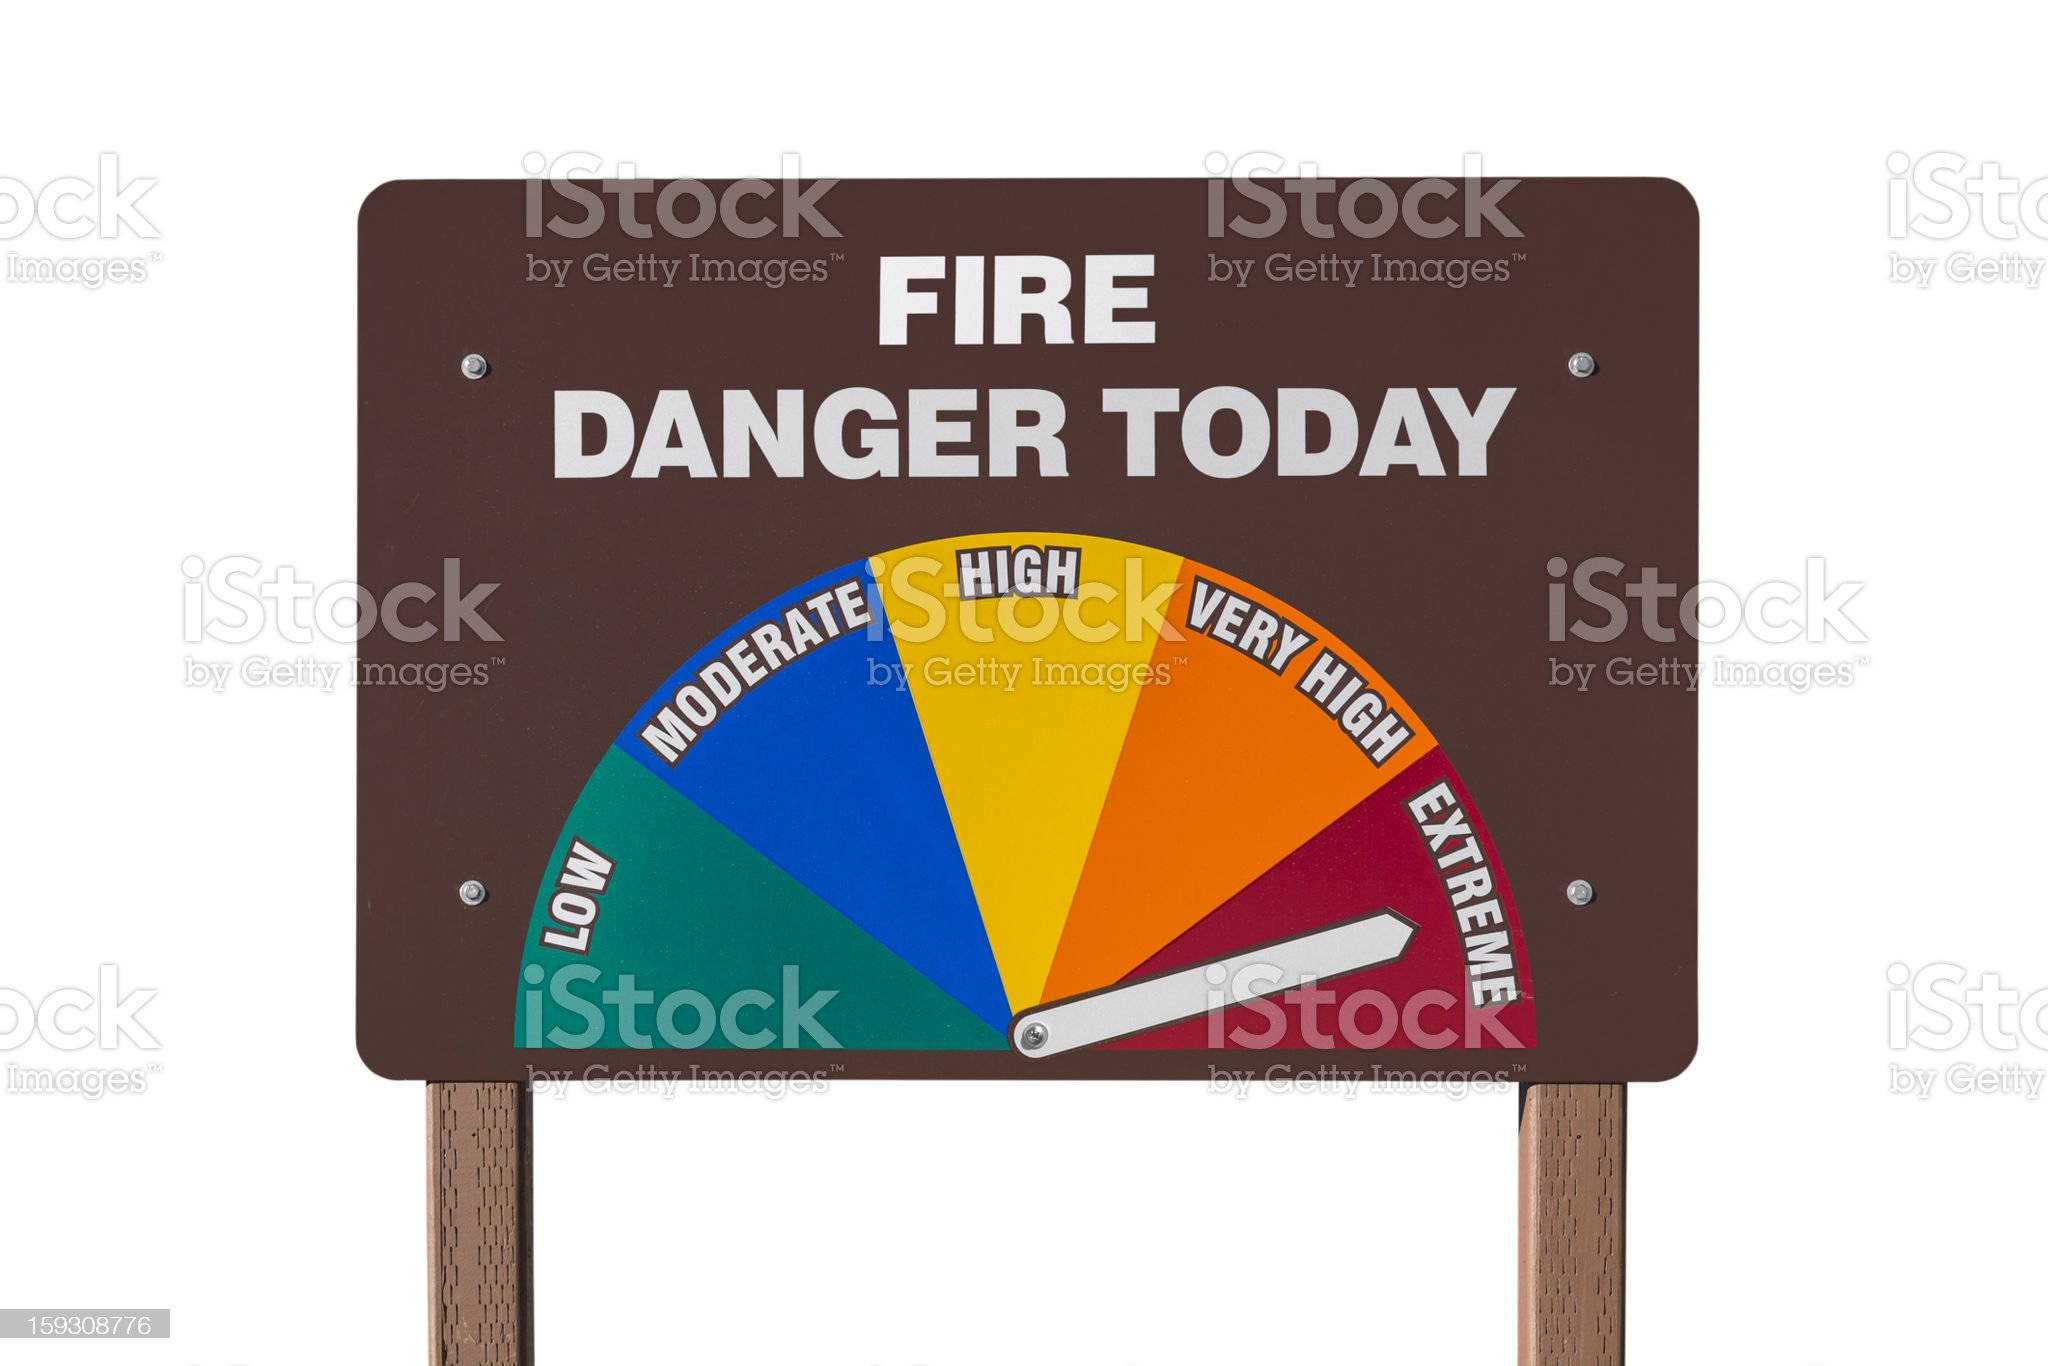 Extreme Fire Danger Today Sign Isolated royalty-free stock photo